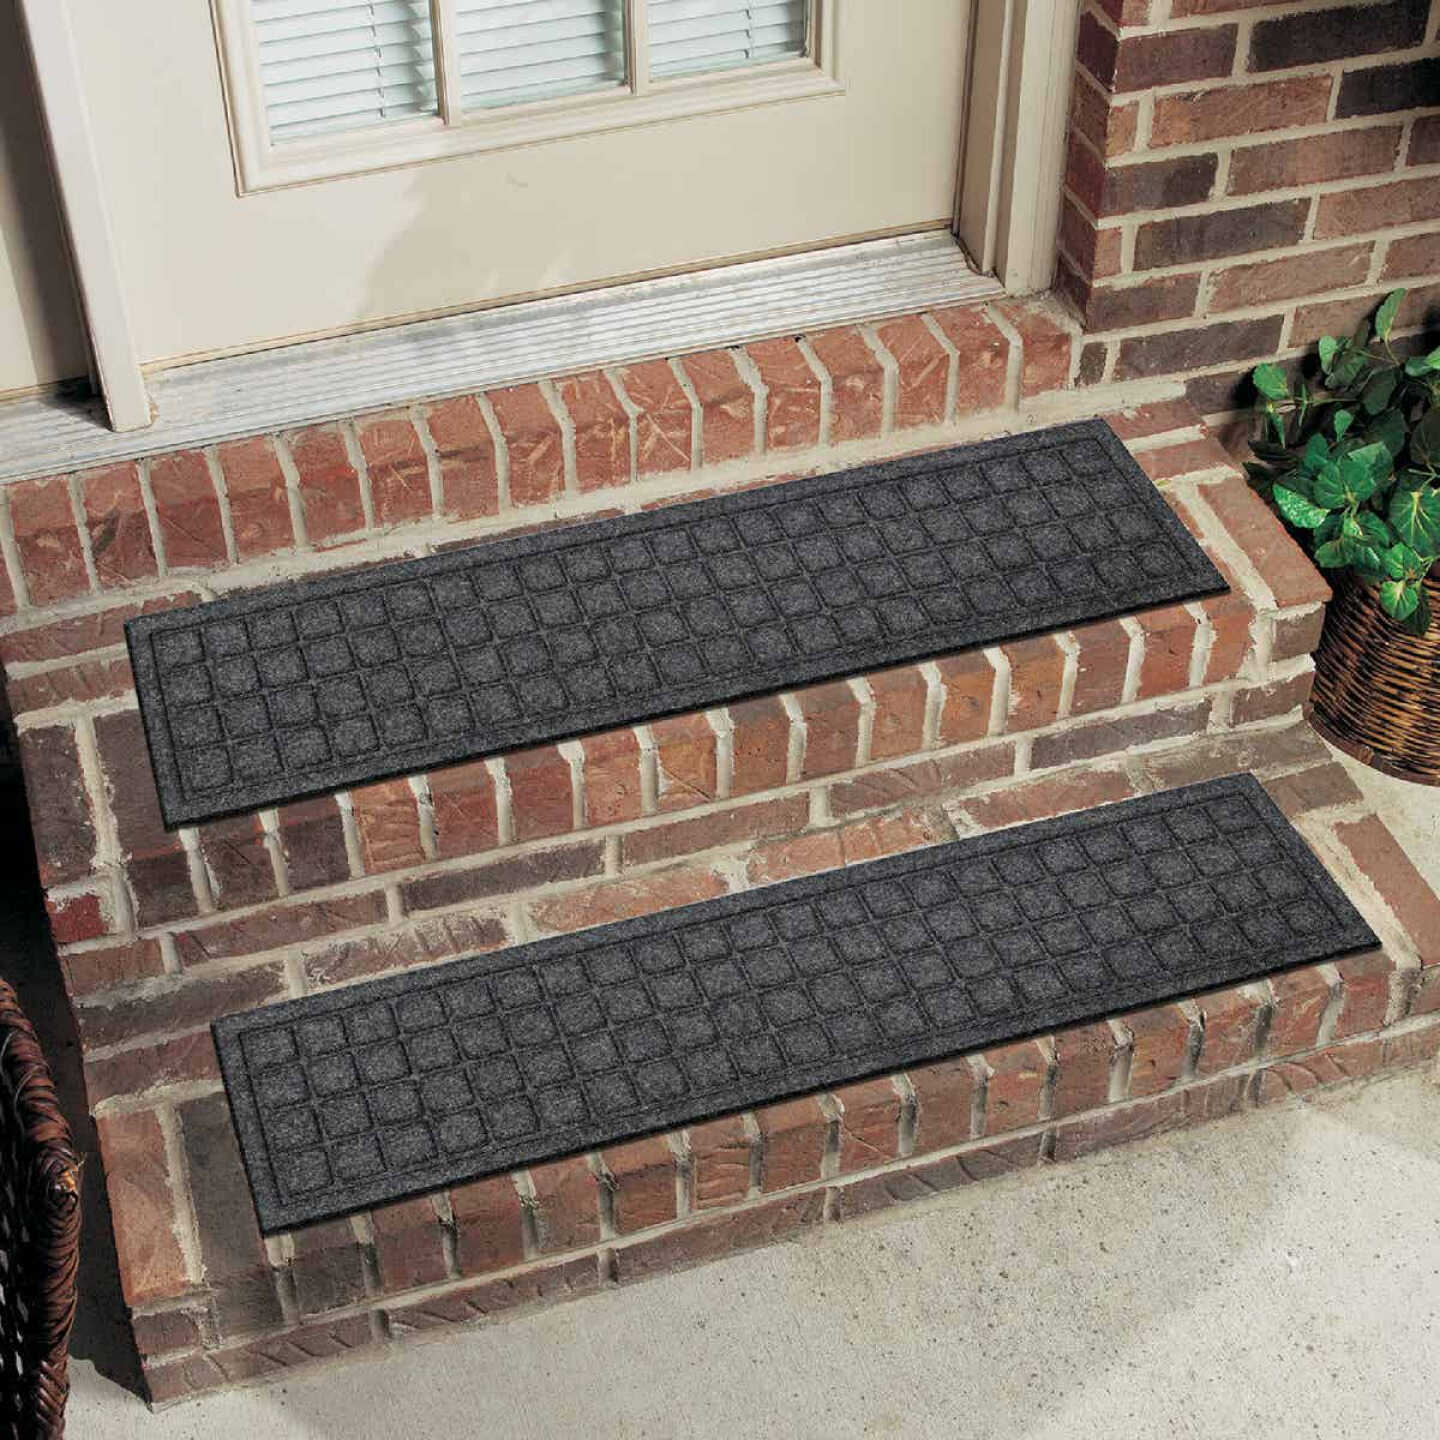 Mohawk Home Square Expressions Brown 8 In. x 36 In. Recycled Rubber Stair Tread Image 1